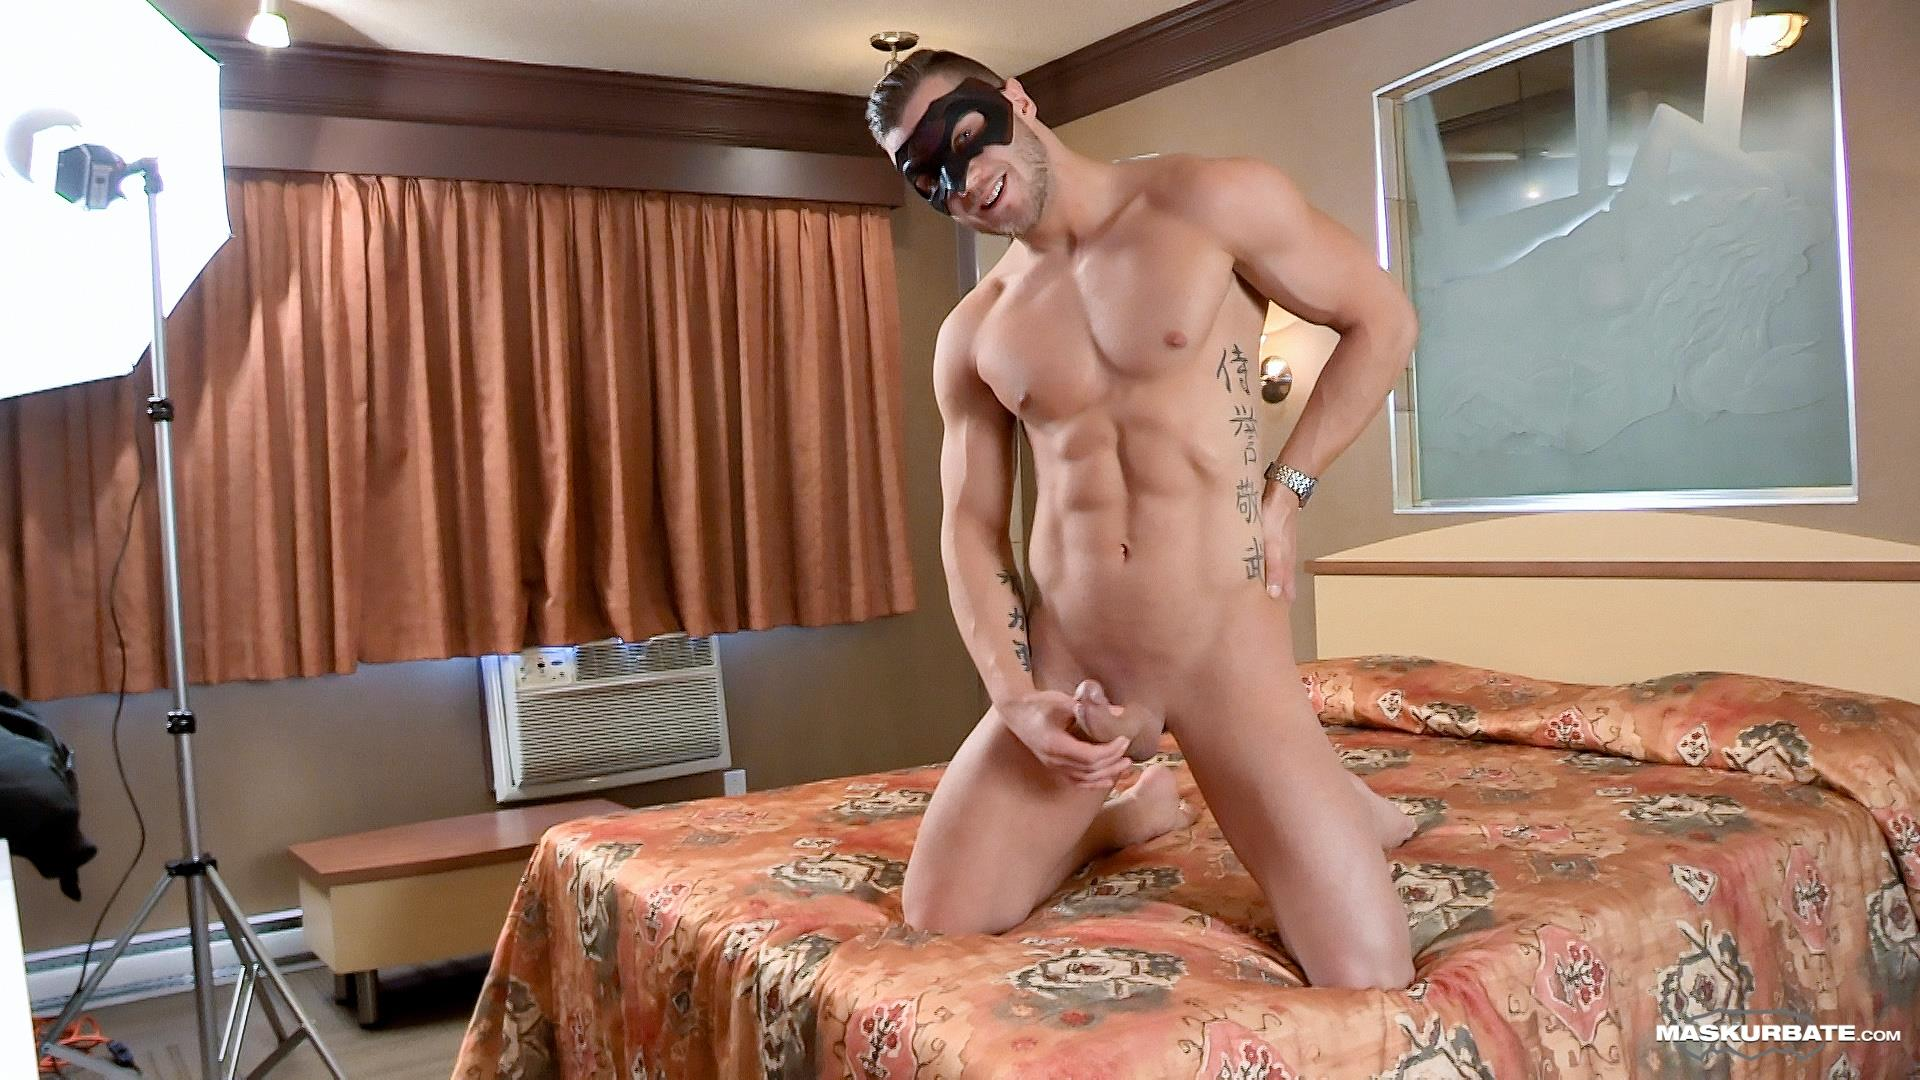 Maskurbate-Mike-Muscle-Hunk-With-A-Big-Uncut-Cock-Jerking-Off-Amateur-Gay-Porn-10 Bi-Curious Muscle Hunk With A Big Uncut Cock Auditions For Gay Porn